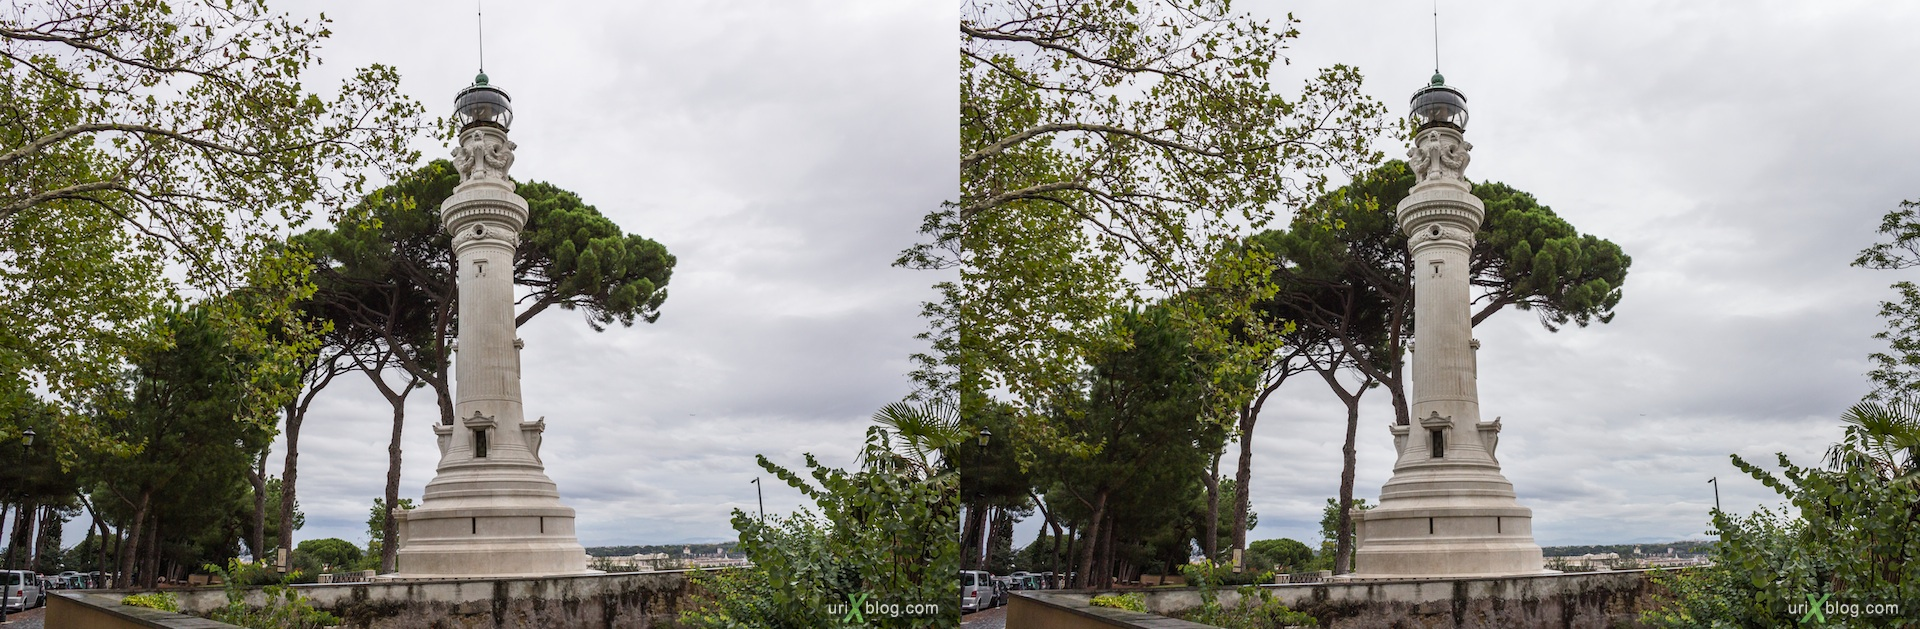 2012, Lighthouse of Gianicolo, Passeggiata del Gianicolo street, Rome, Italy, Europe, 3D, stereo pair, cross-eyed, crossview, cross view stereo pair